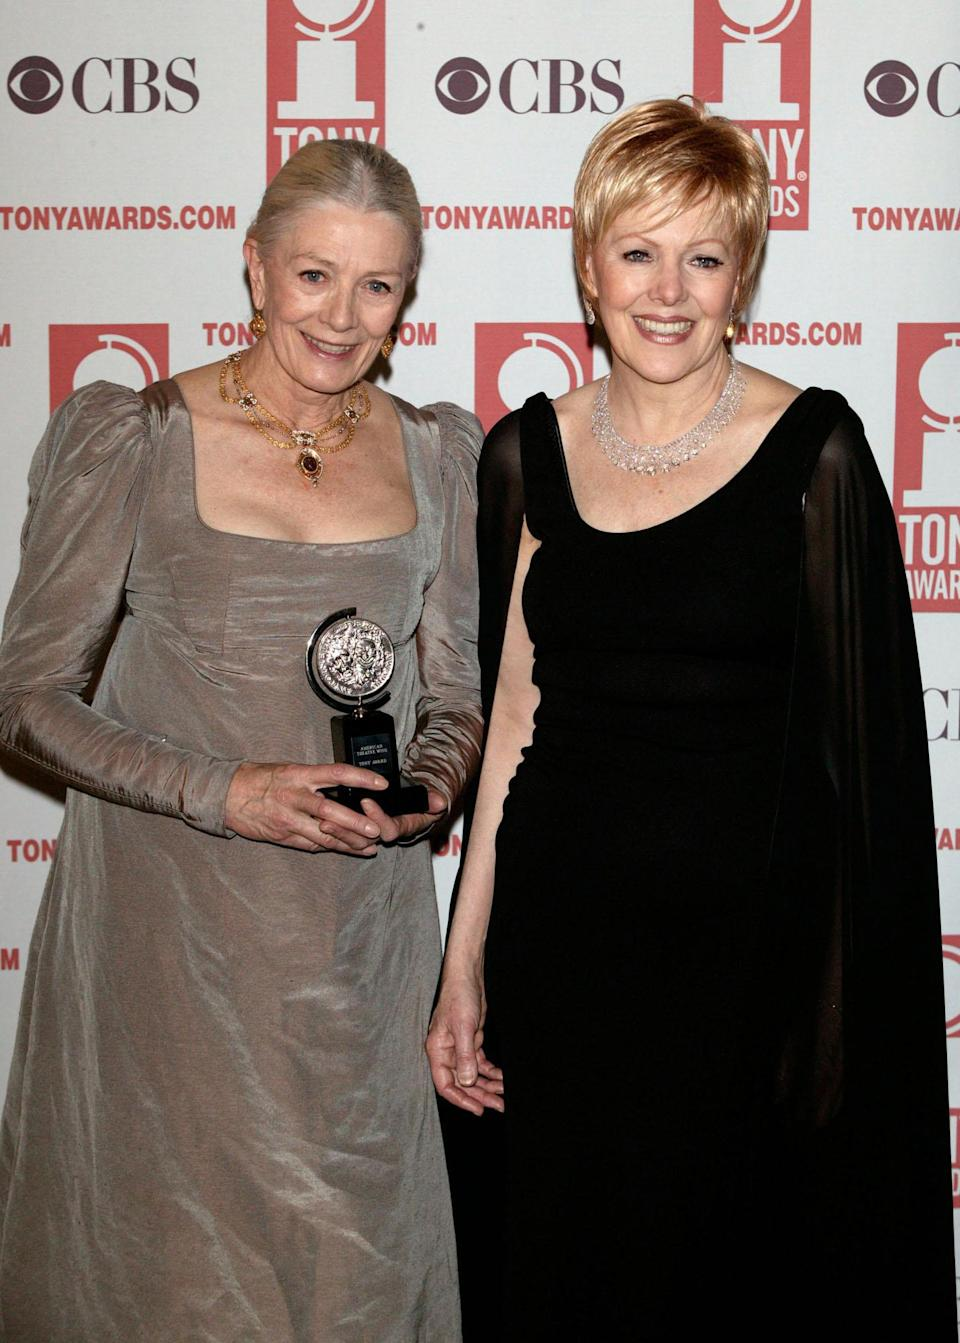 Actress Vanessa Redgrave (left) with her Tony Award for best actress and her sister Lynn Redgrave during the 2003 Tony Awards at Radio City Music Hall in New York City.